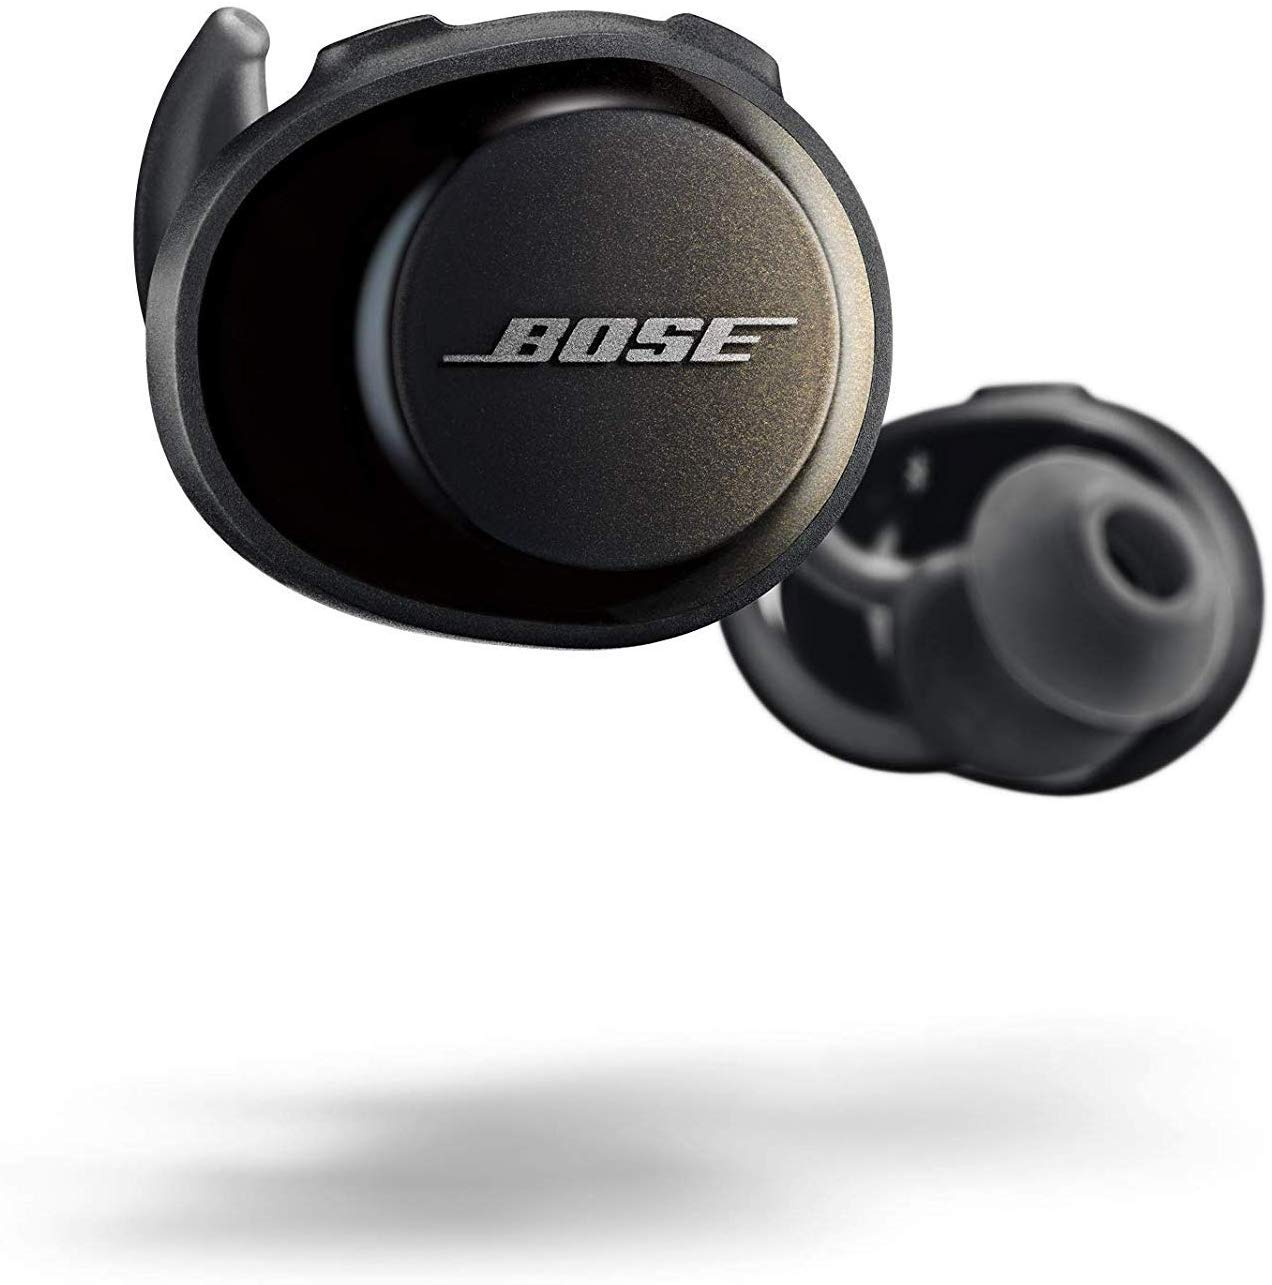 Amazon Com Bose Soundsport Free True Wireless Earbuds Sweatproof Bluetooth Headphones For Workouts And Sports Black Electronics